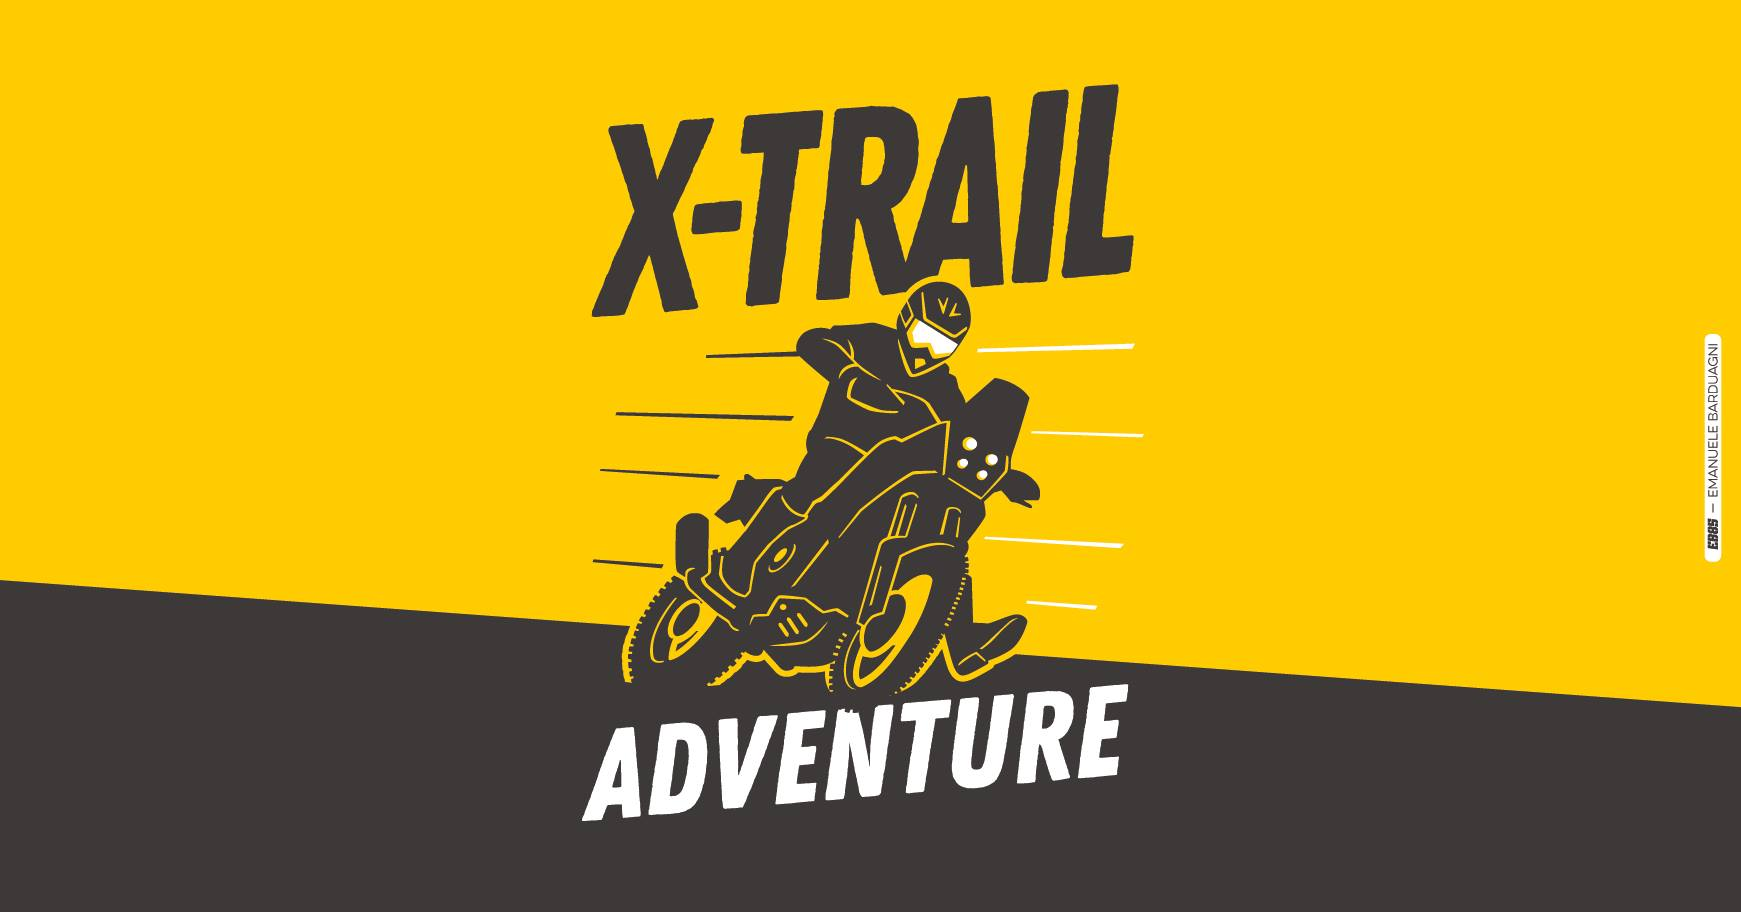 italiainpiega-evento-moto off road 2021-x-trail adventure